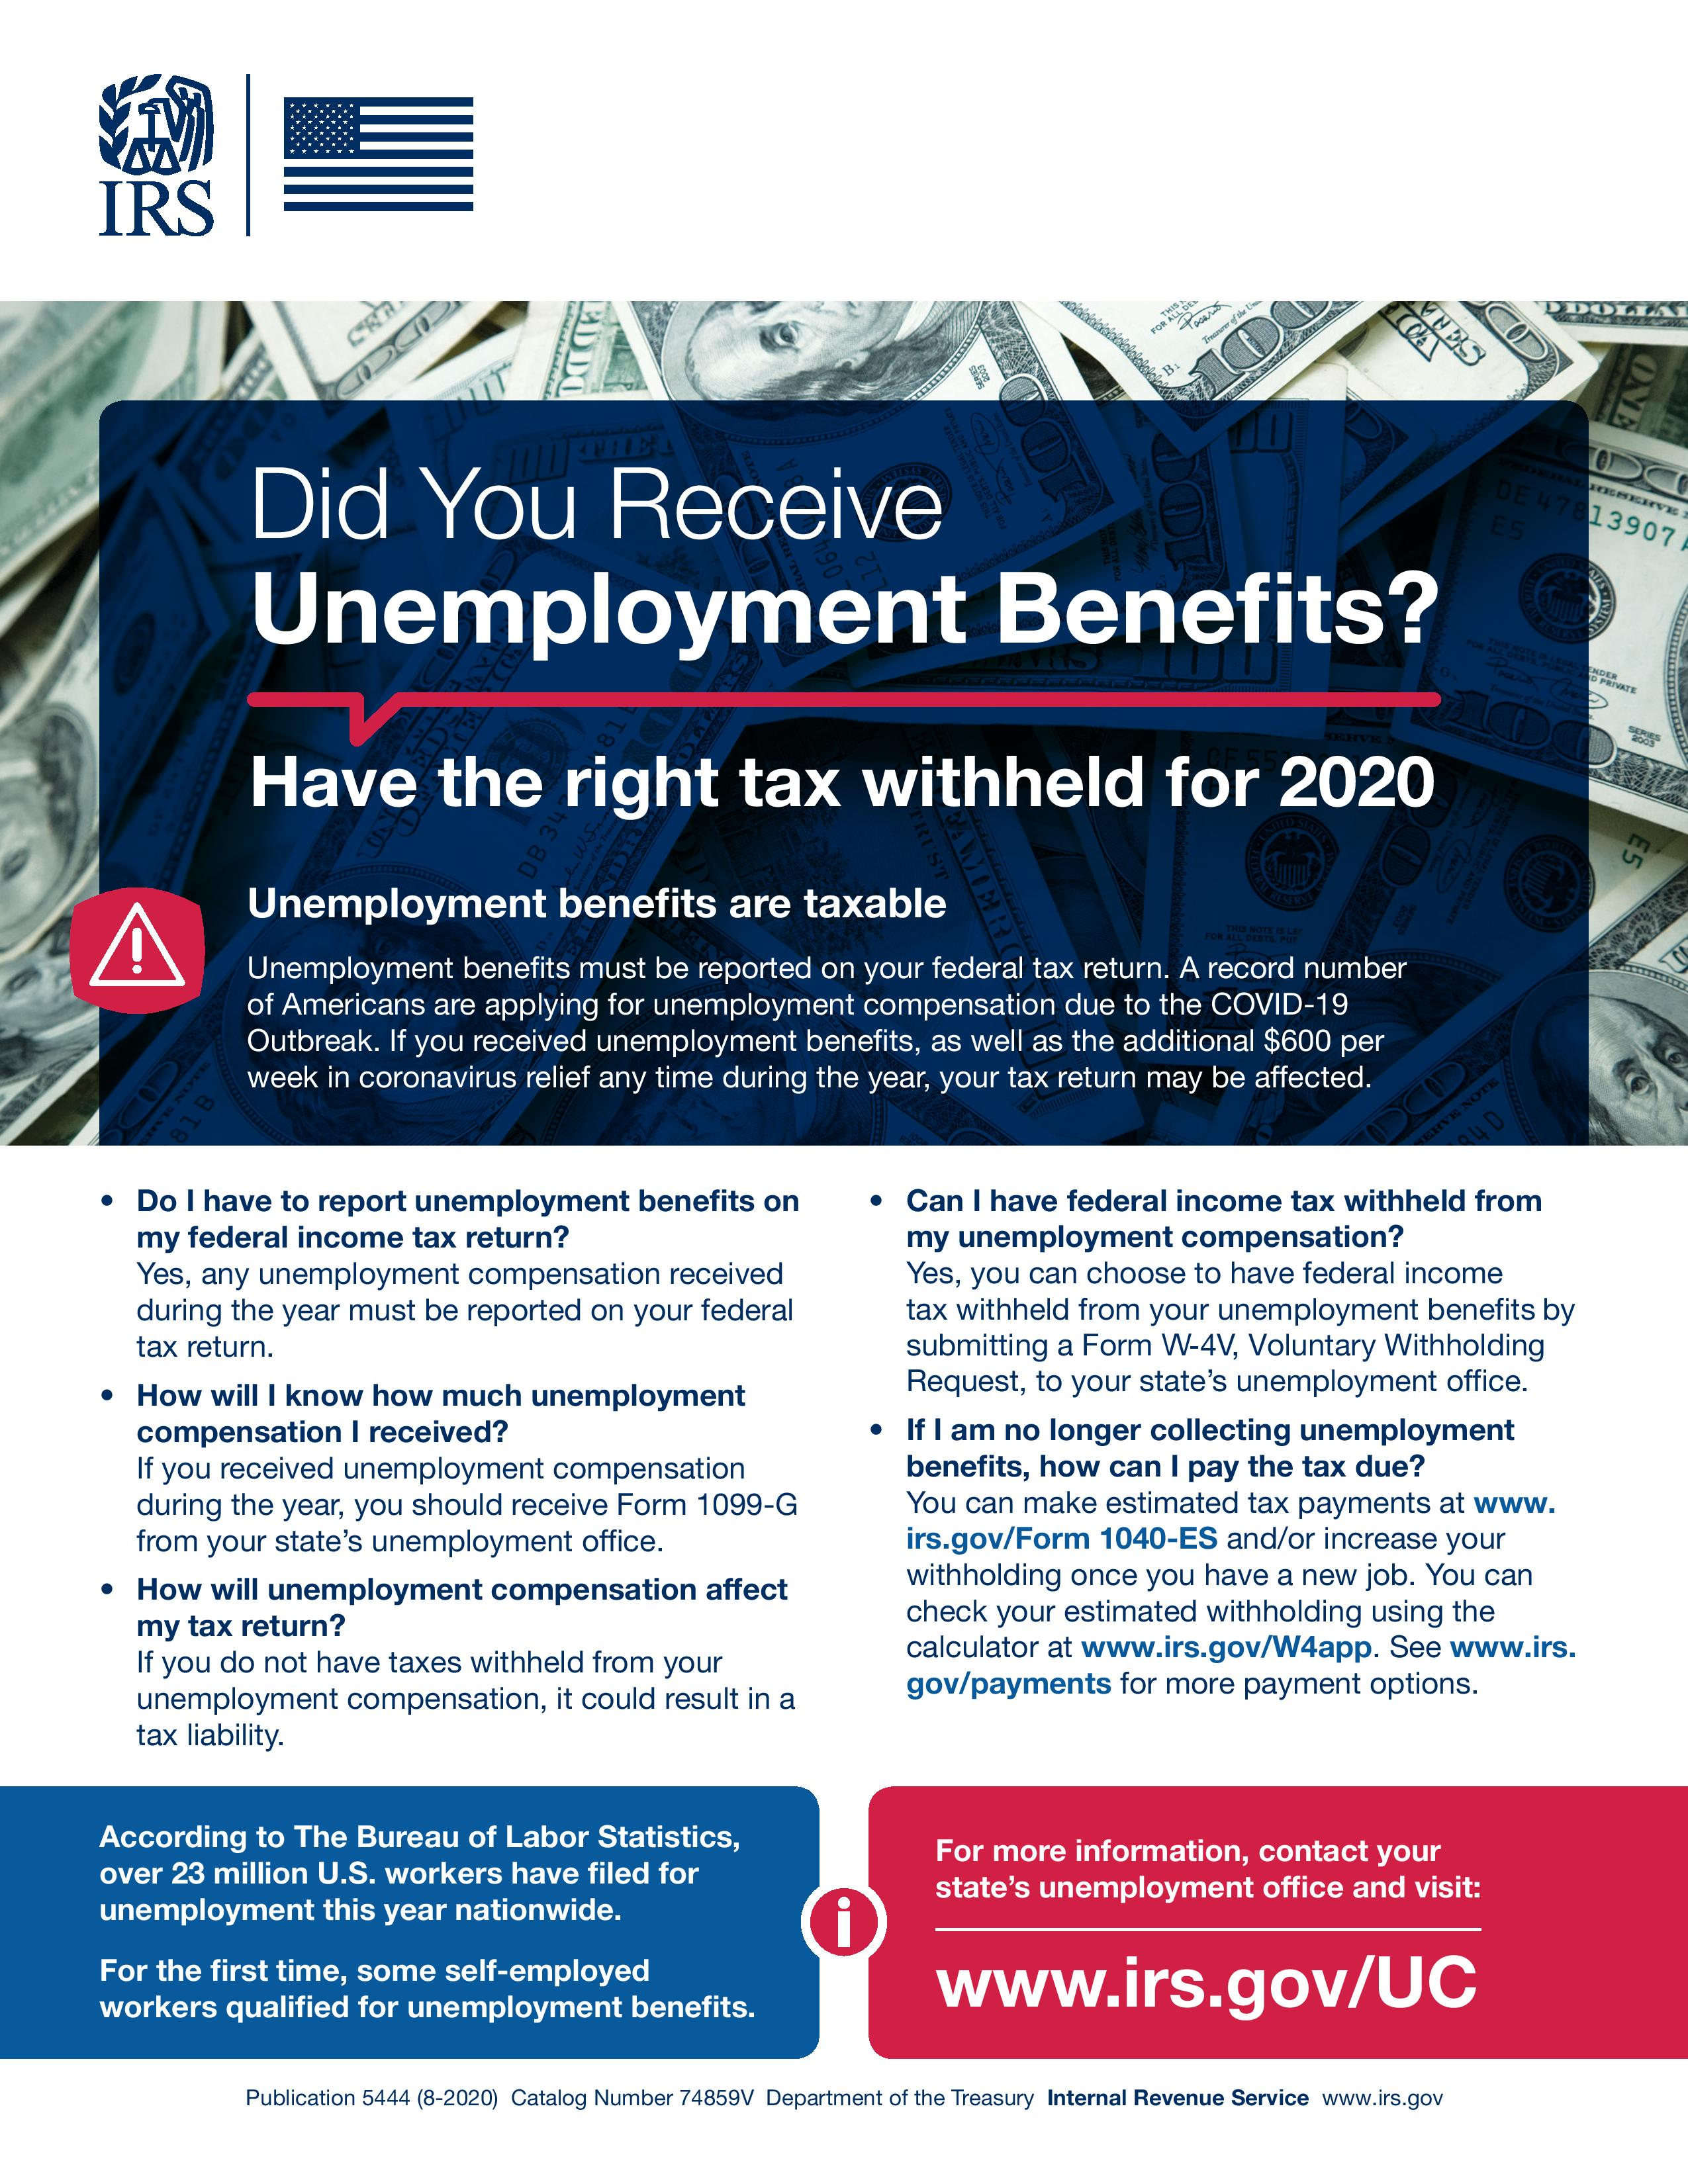 IRS POSTER